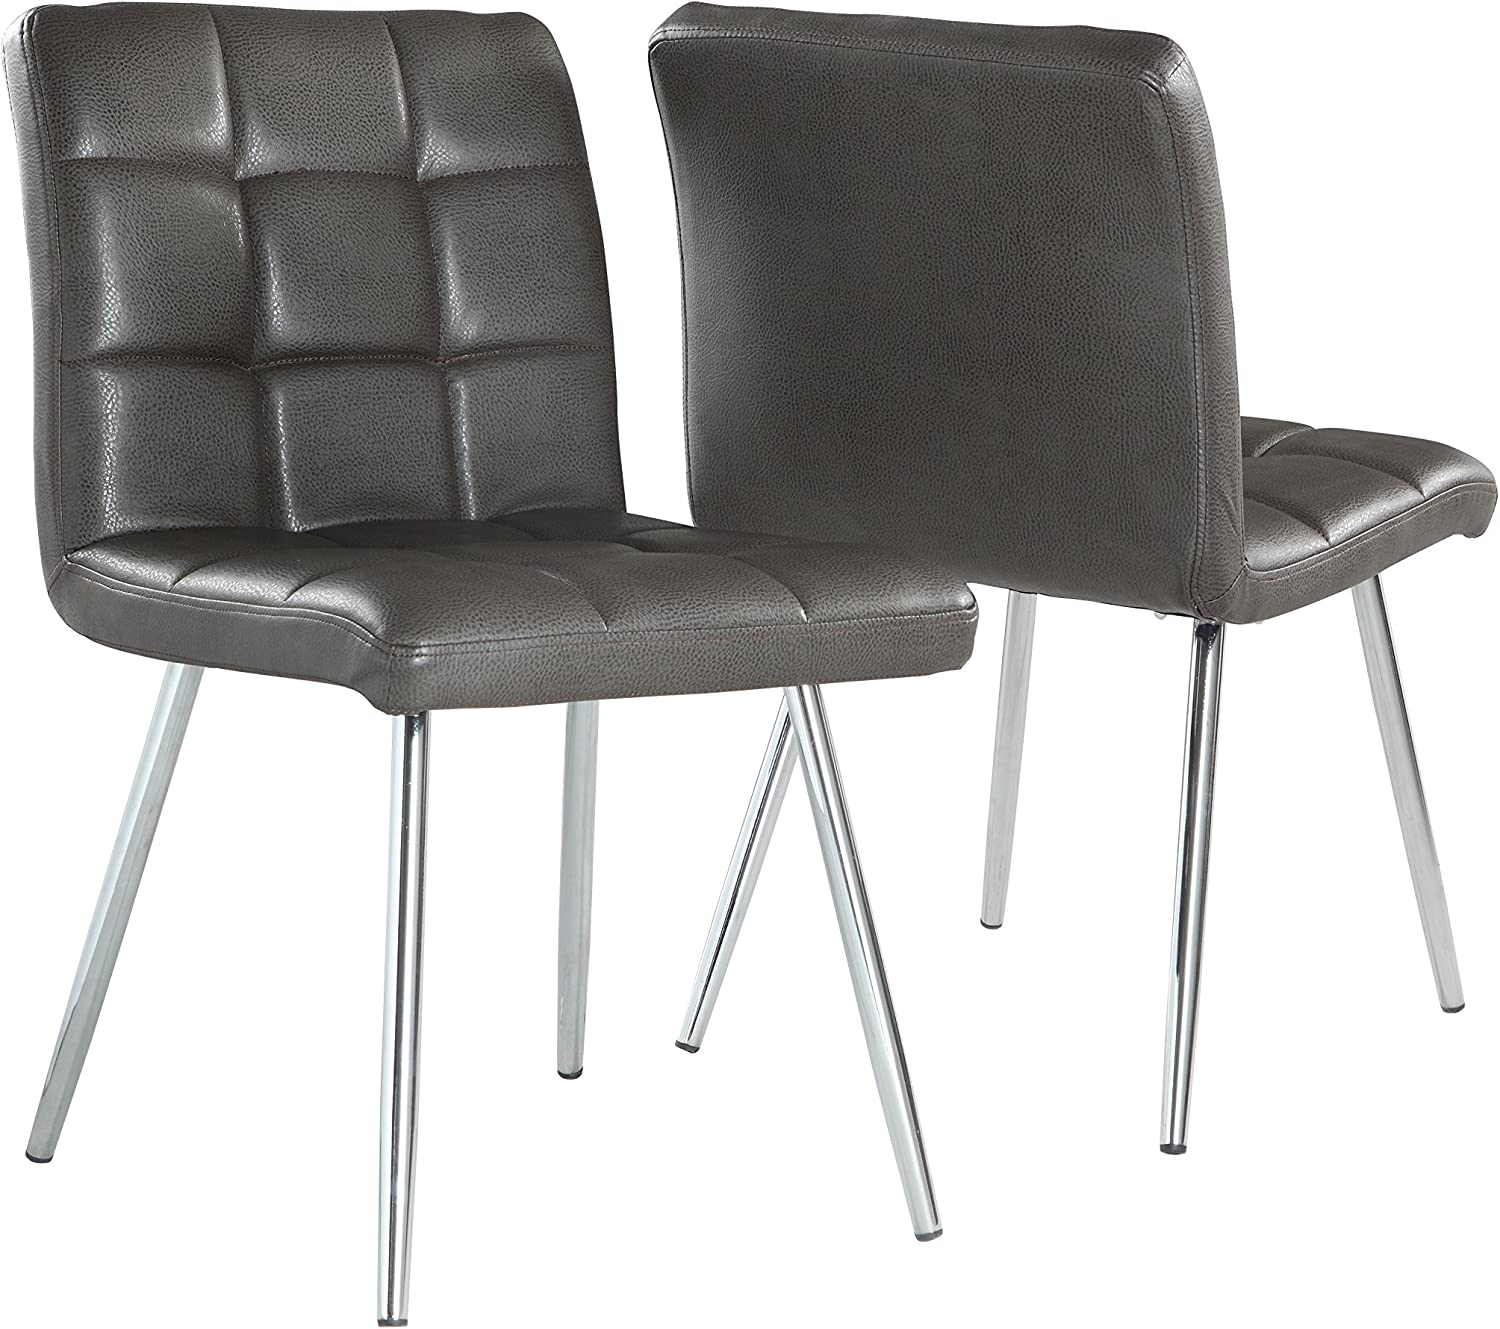 Monarch Specialties Grey Leather-Look Chrome Metal 2-Piece Dining Chair, 32-Inch